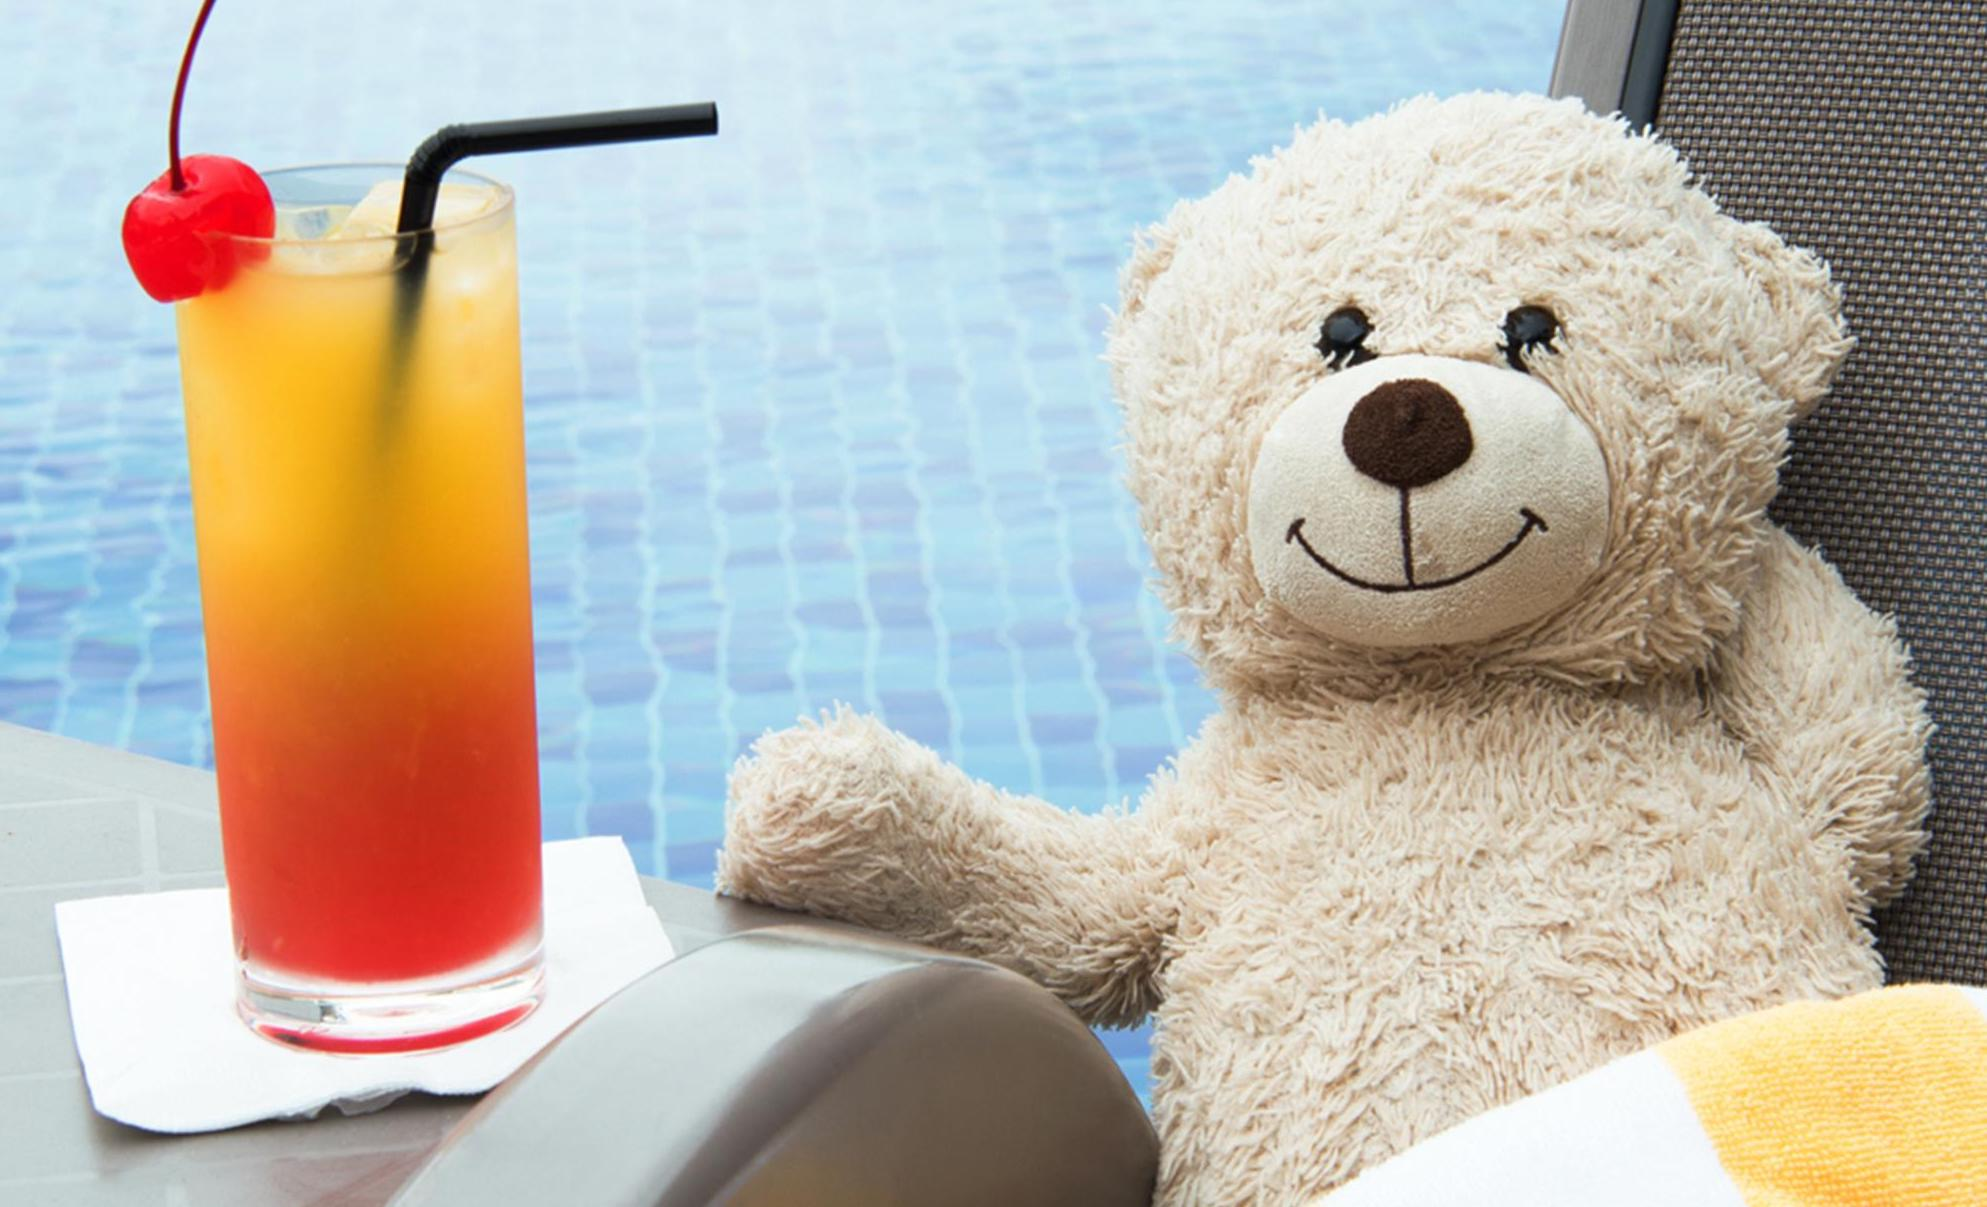 A Lost Teddy Bear From The UK: Here's How Aerotel Singapore Took Care of It